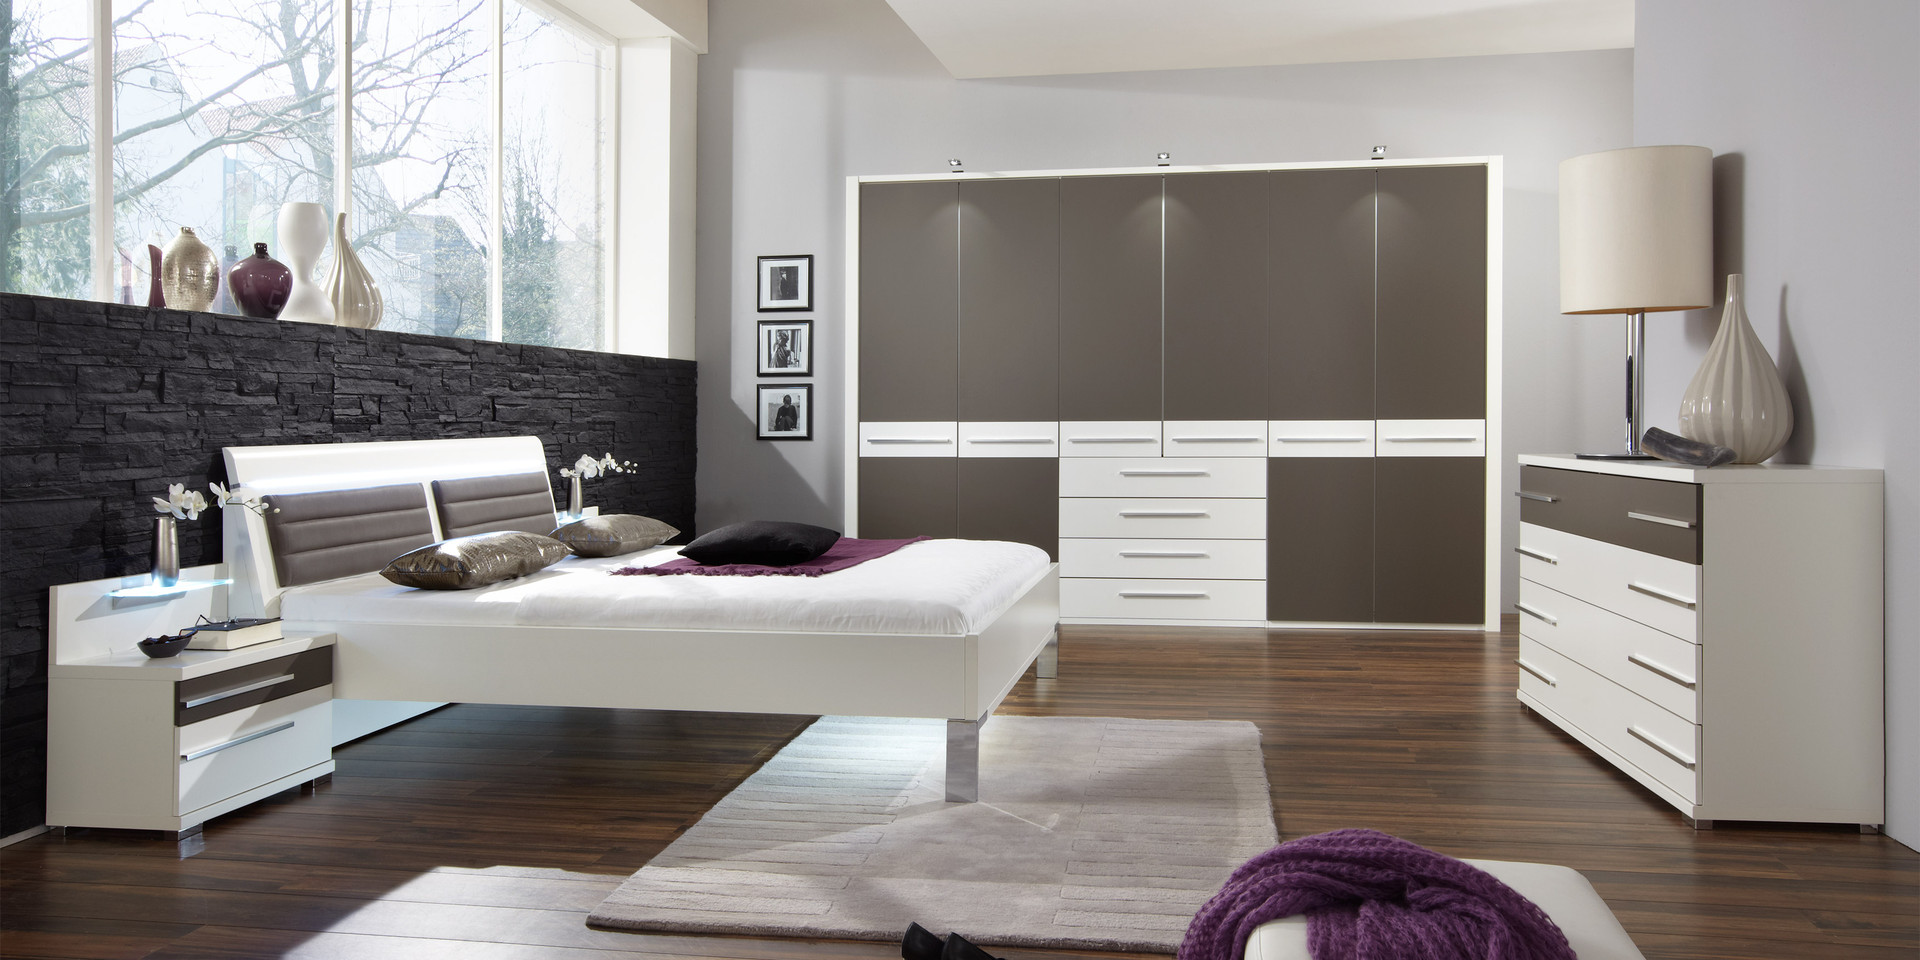 erleben sie das schlafzimmer pasadena m belhersteller. Black Bedroom Furniture Sets. Home Design Ideas